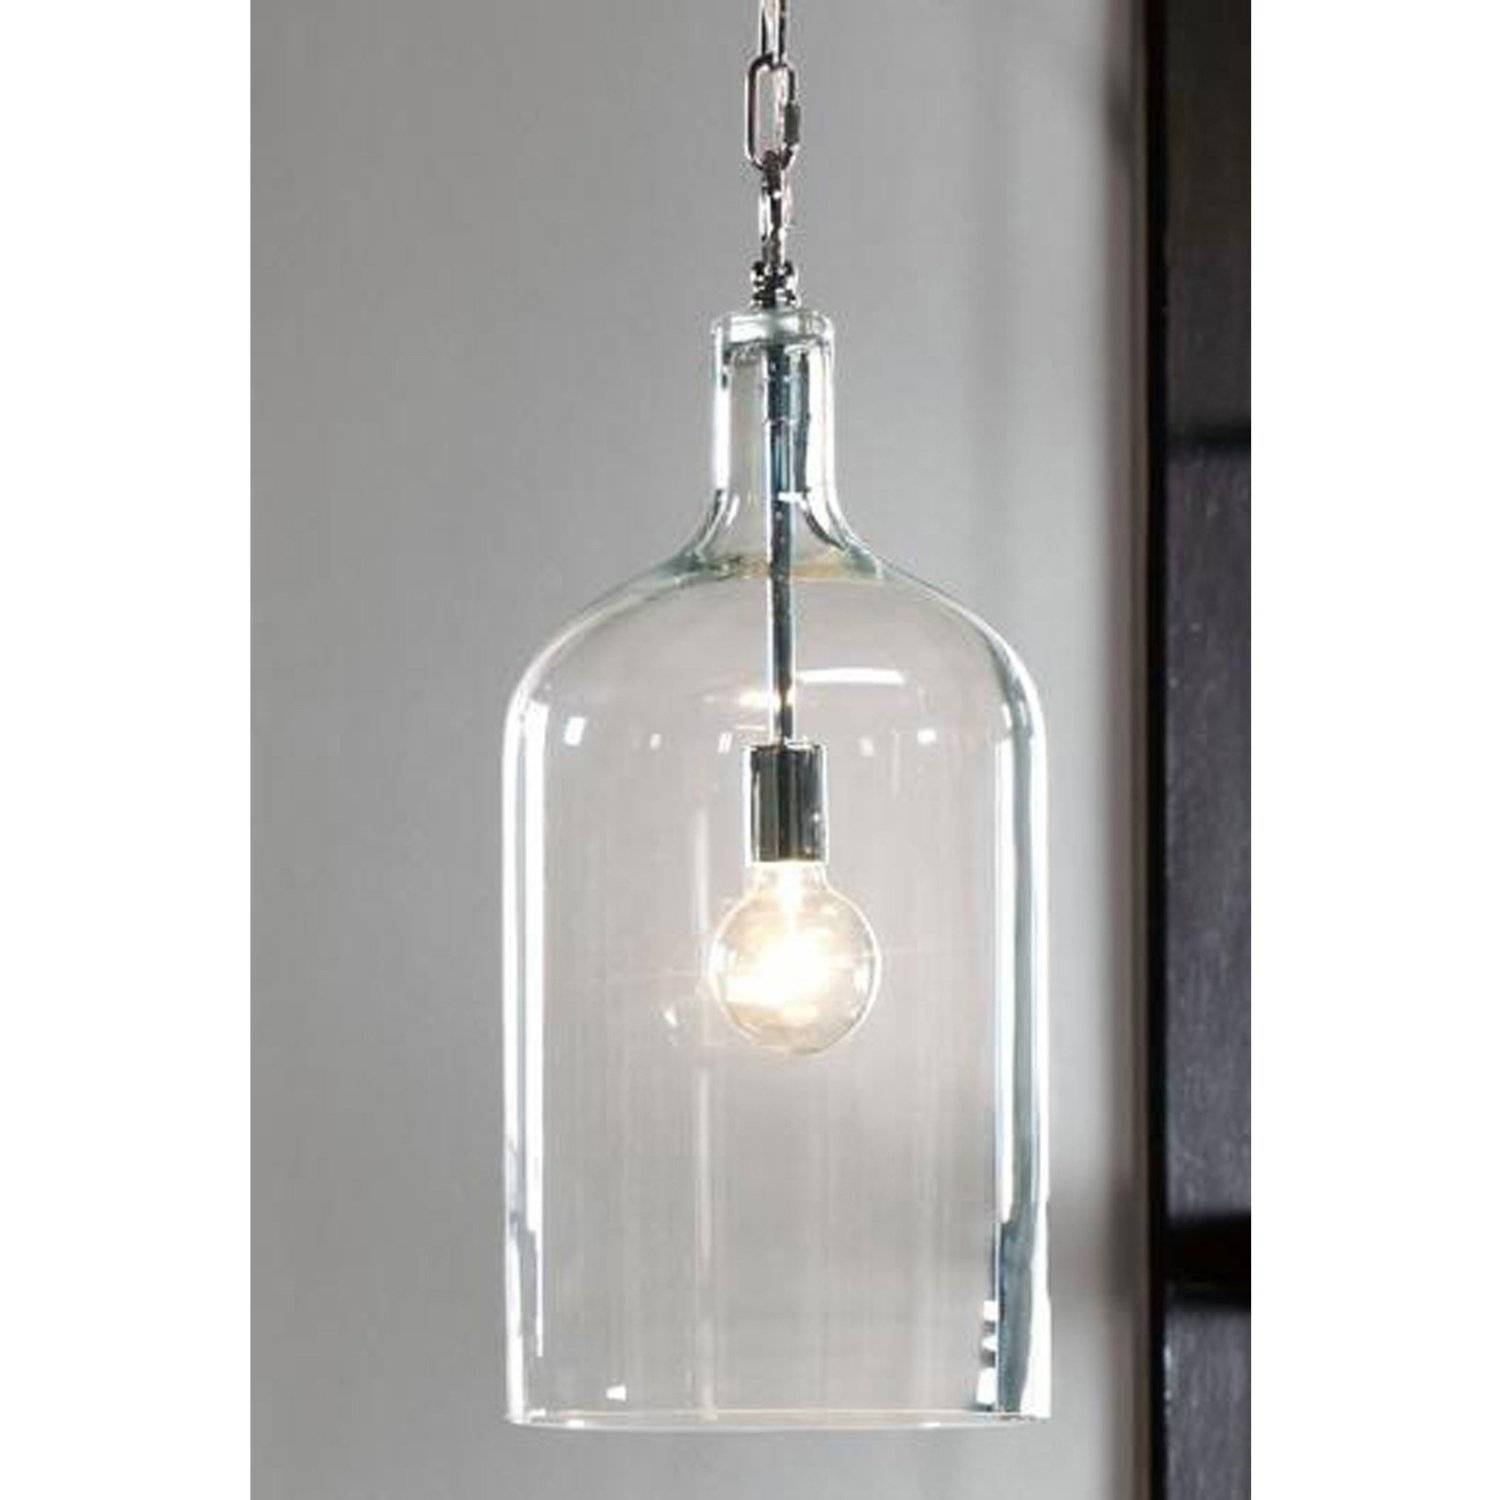 Linenandlavender: Lighting - New, Antique, One-Of-A-Kind inside French Glass Pendant Lights (Image 13 of 15)